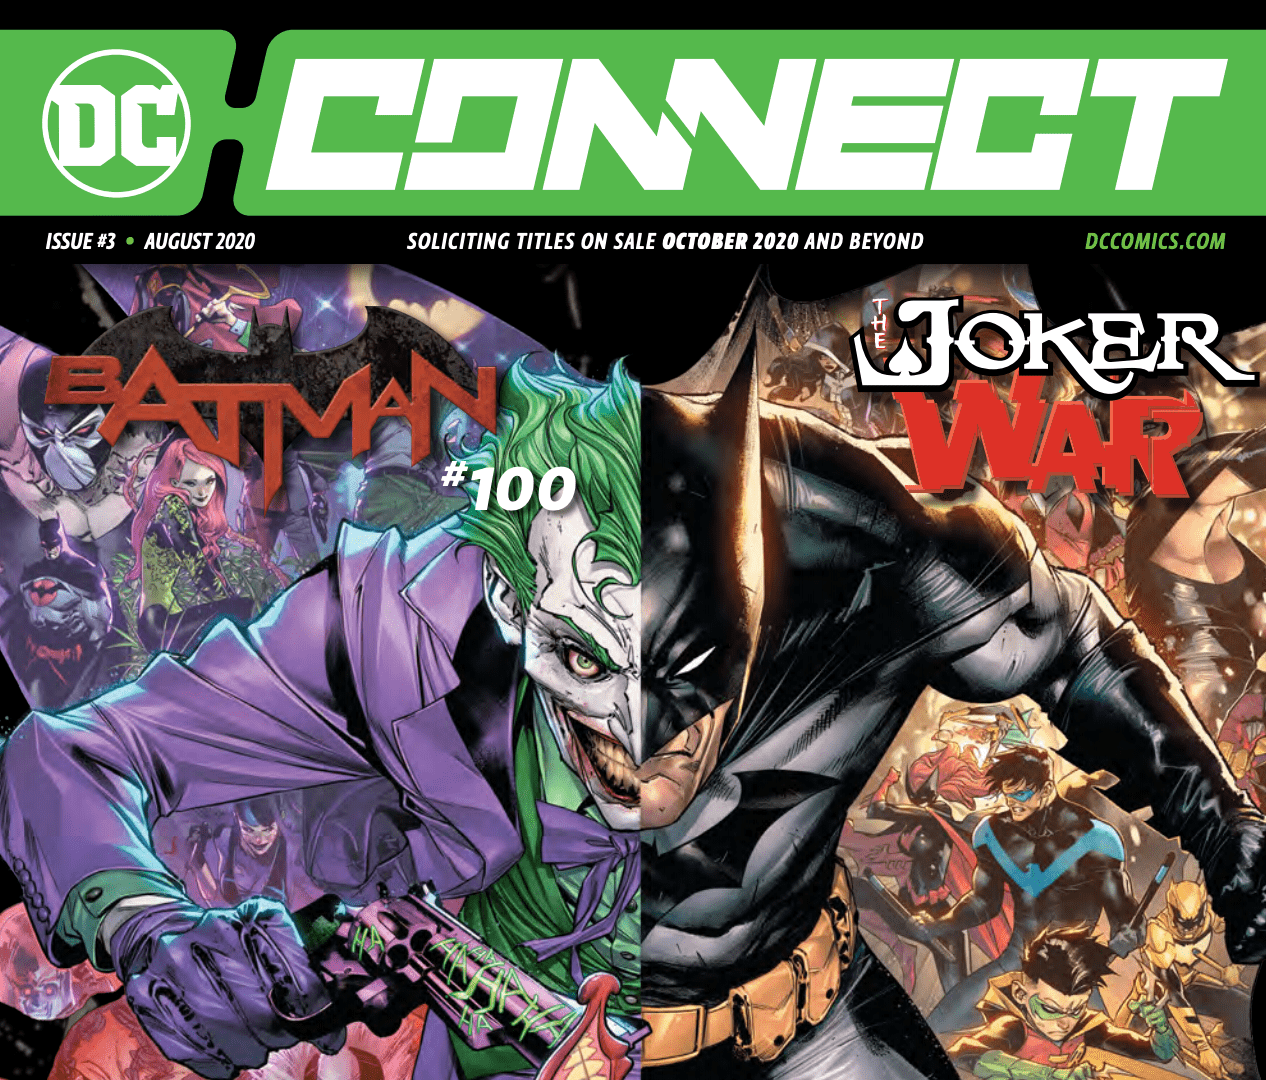 DC Connect #3 offers details on Dark Nights: Death Metal, Rorschach #1, and more!